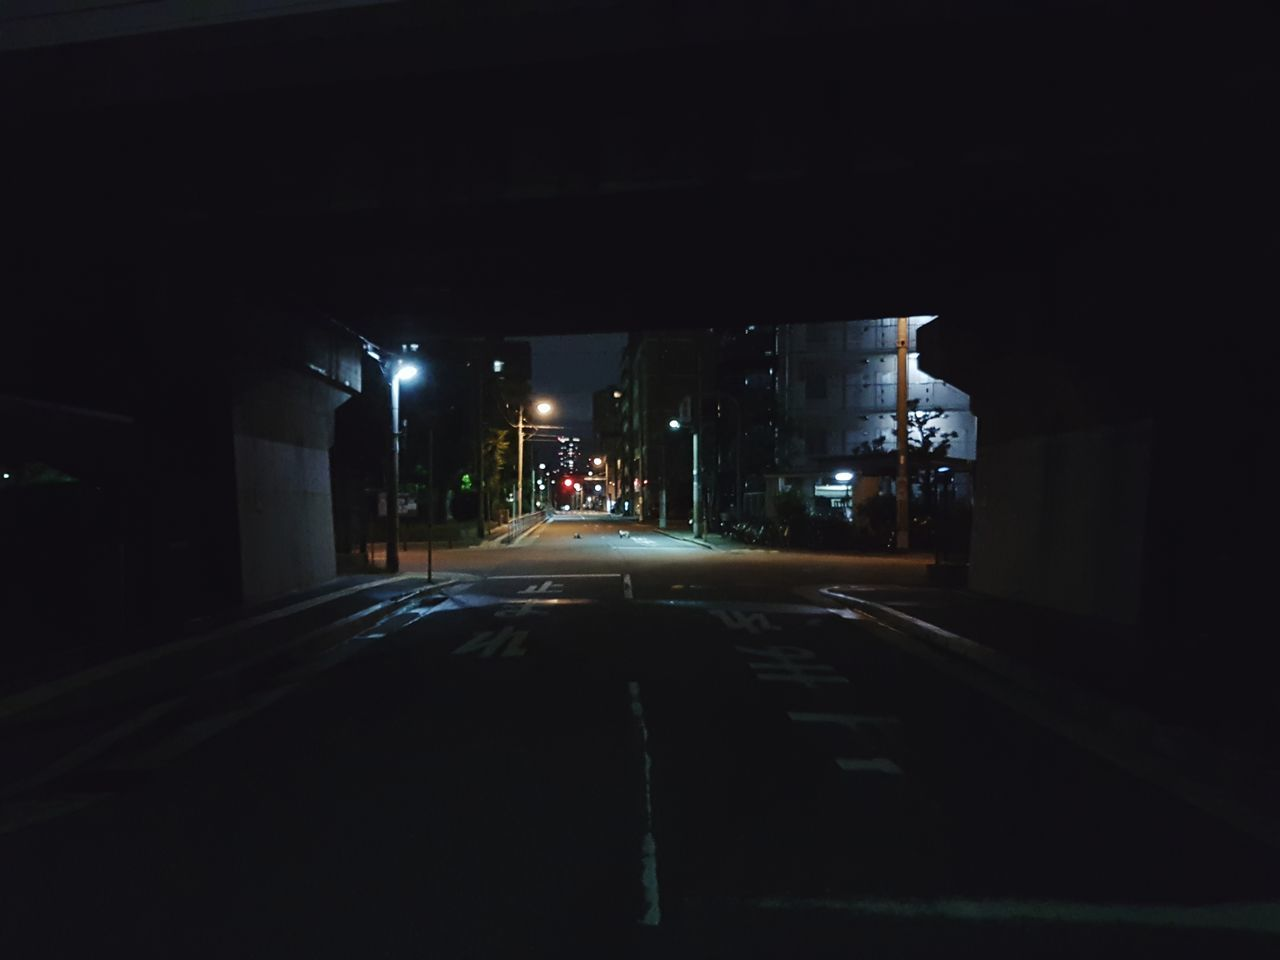 night, illuminated, architecture, transportation, built structure, road, city, street, building exterior, no people, the way forward, outdoors